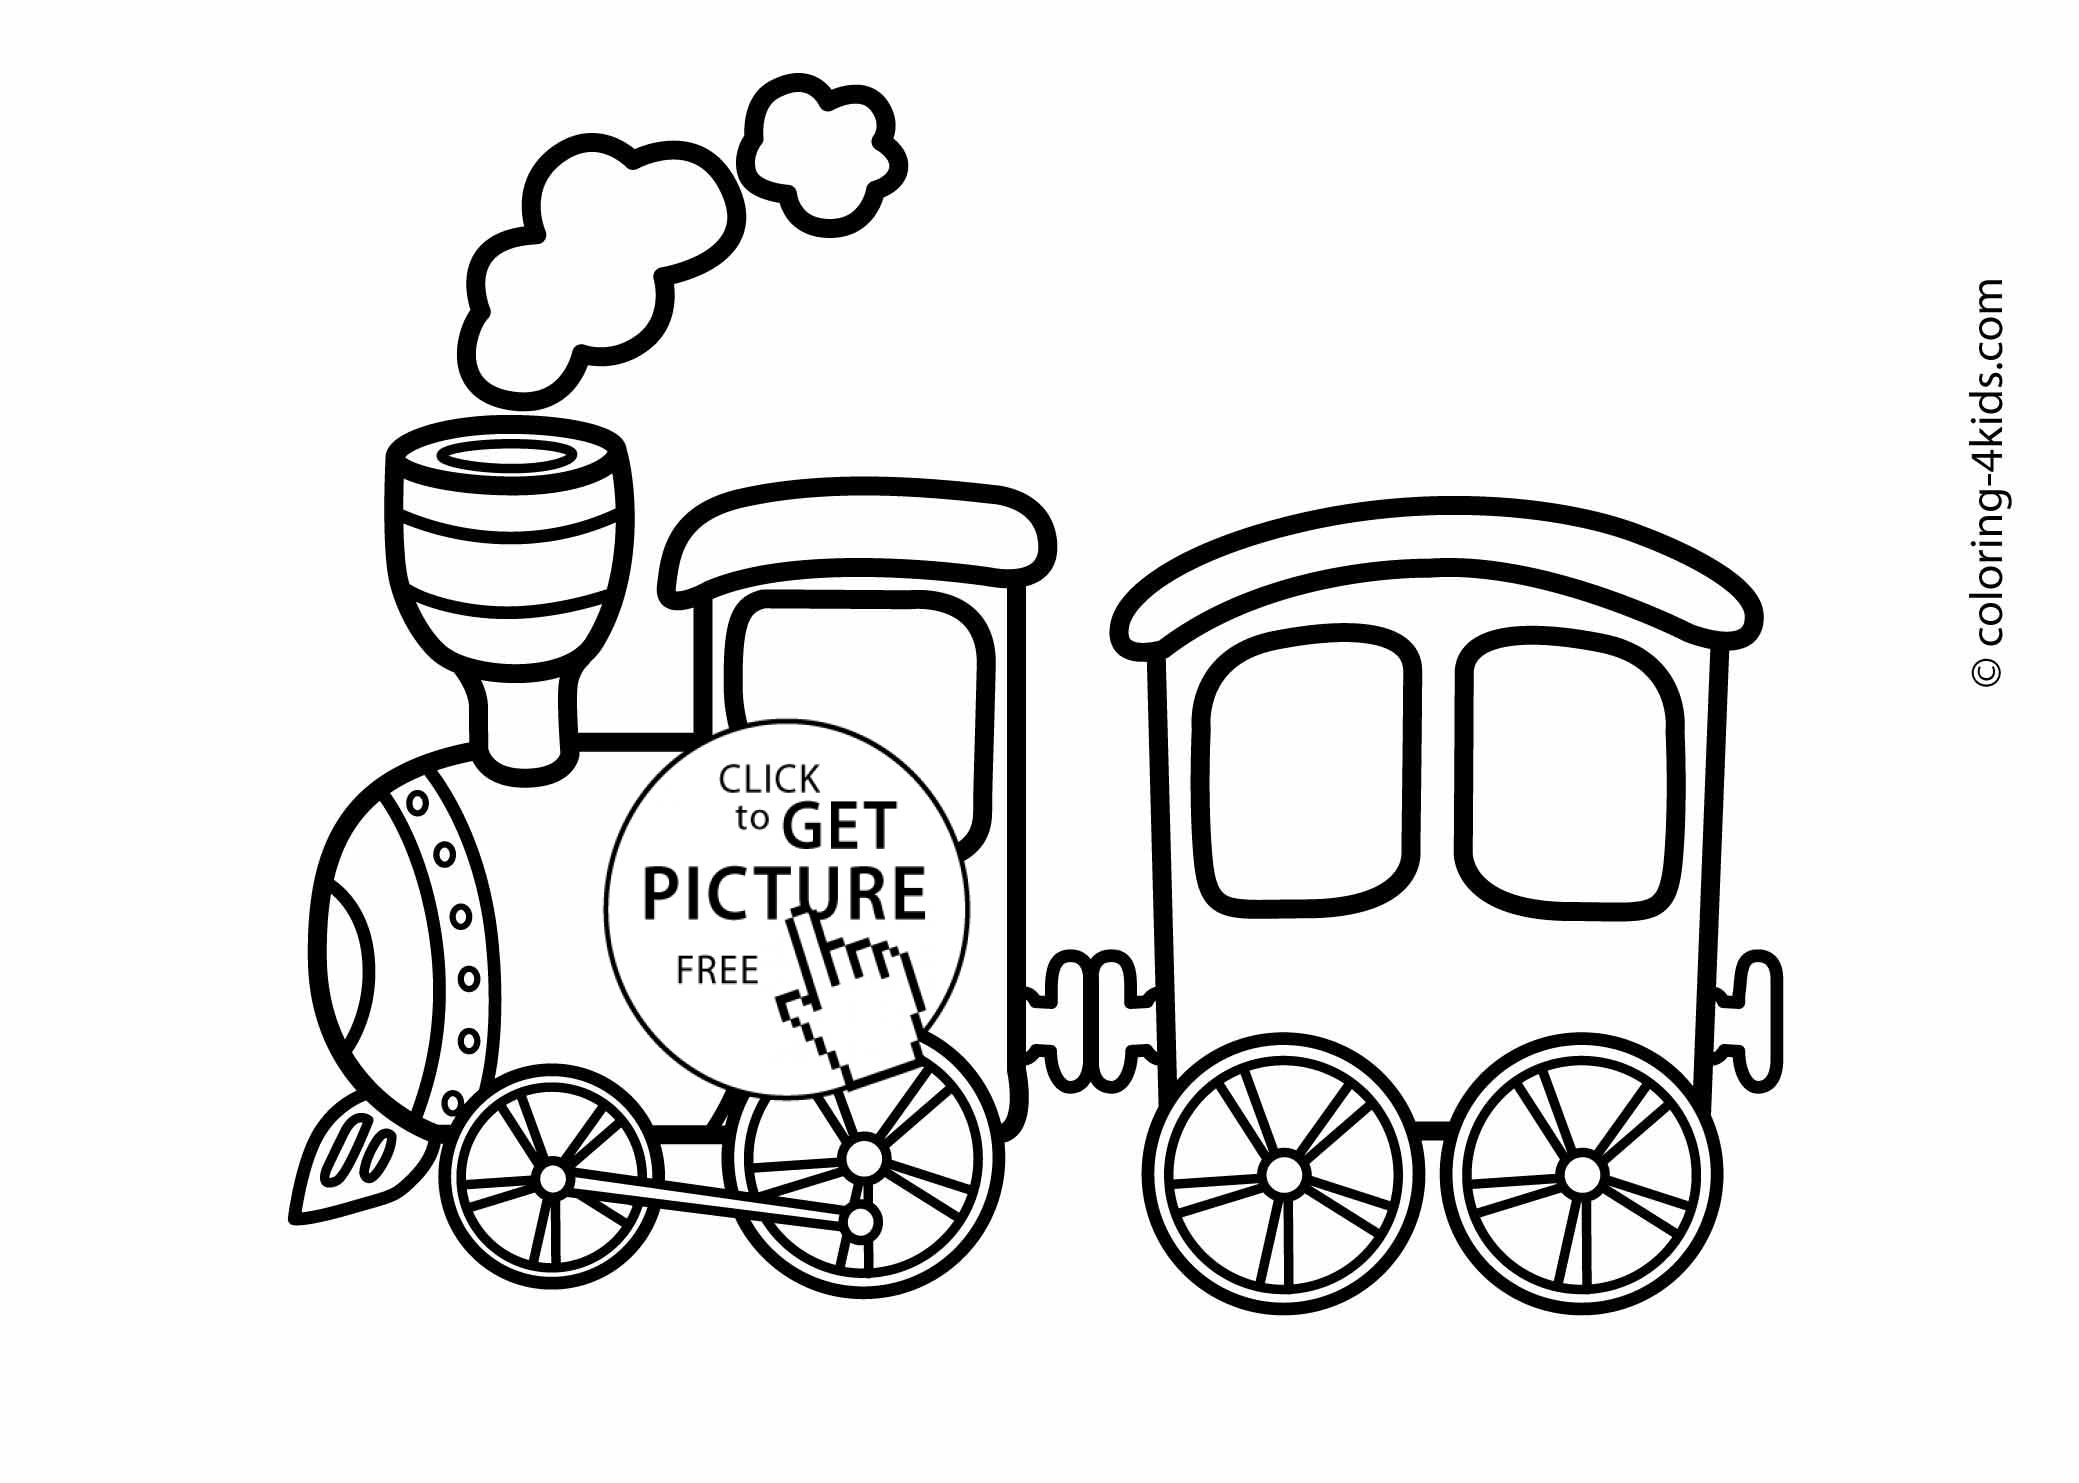 train coloring image 8 best train subway and railway coloring pages for kids train coloring image